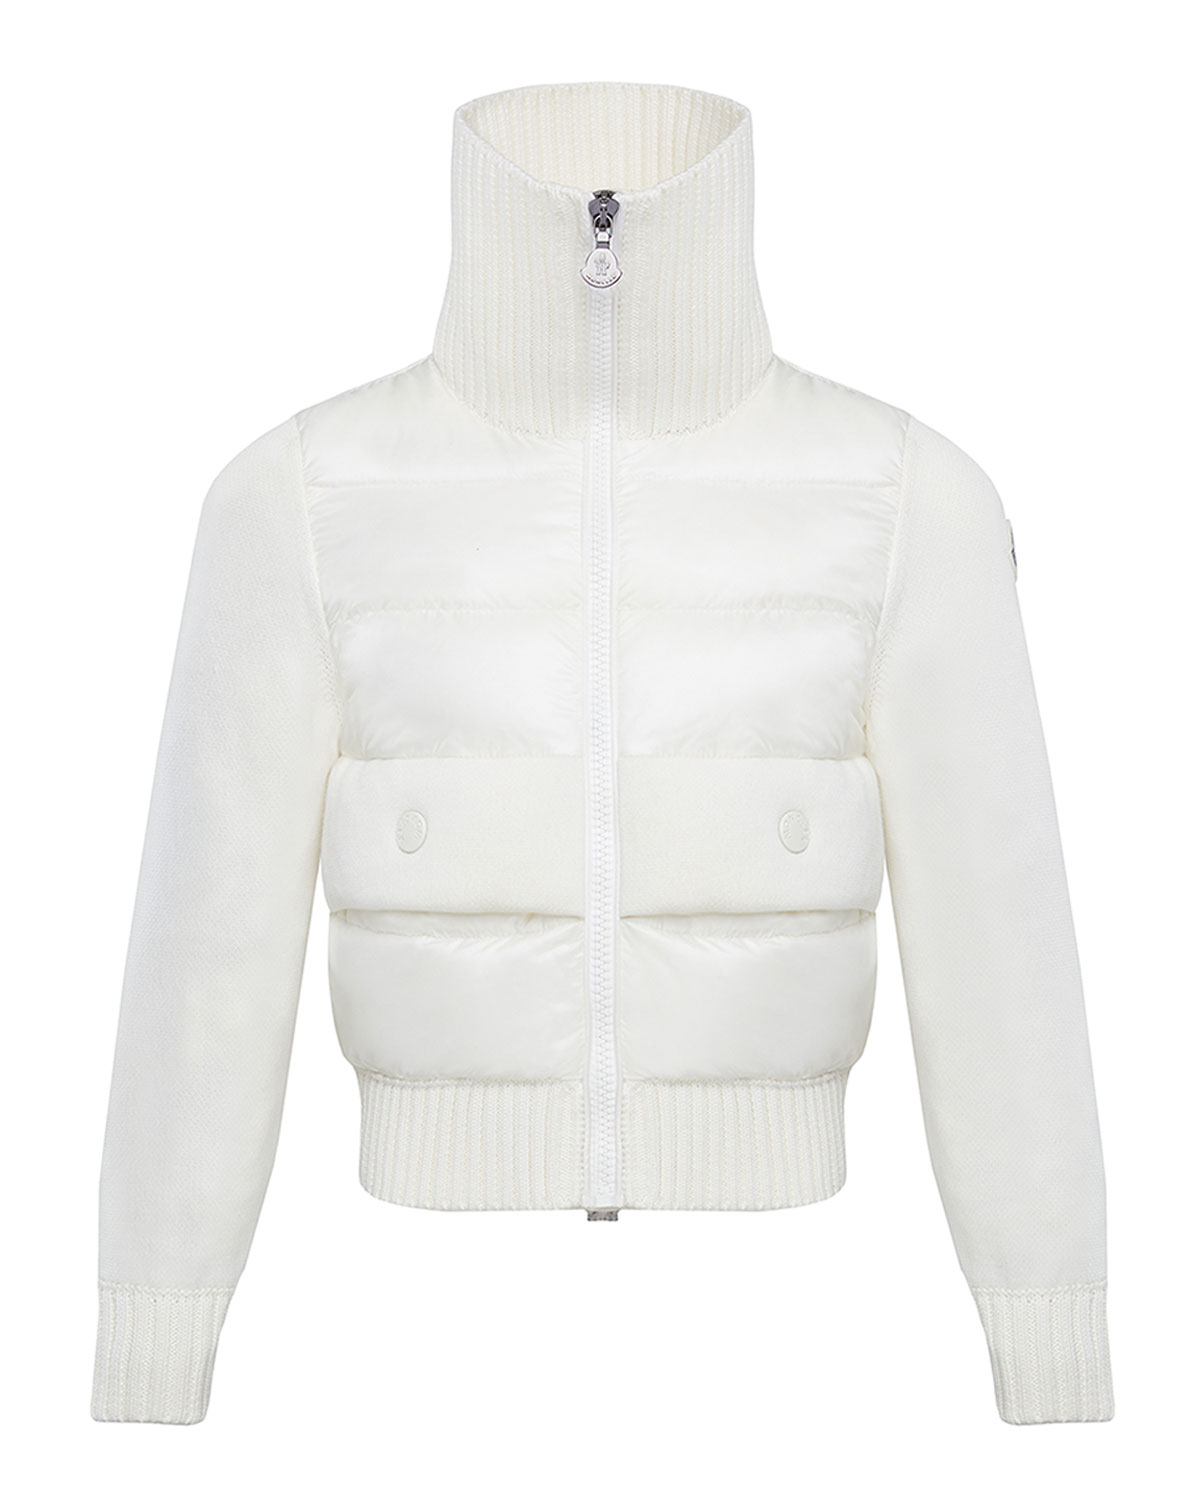 Moncler Girl's Knit Puff Front Turtleneck Jacket, Size 8-14